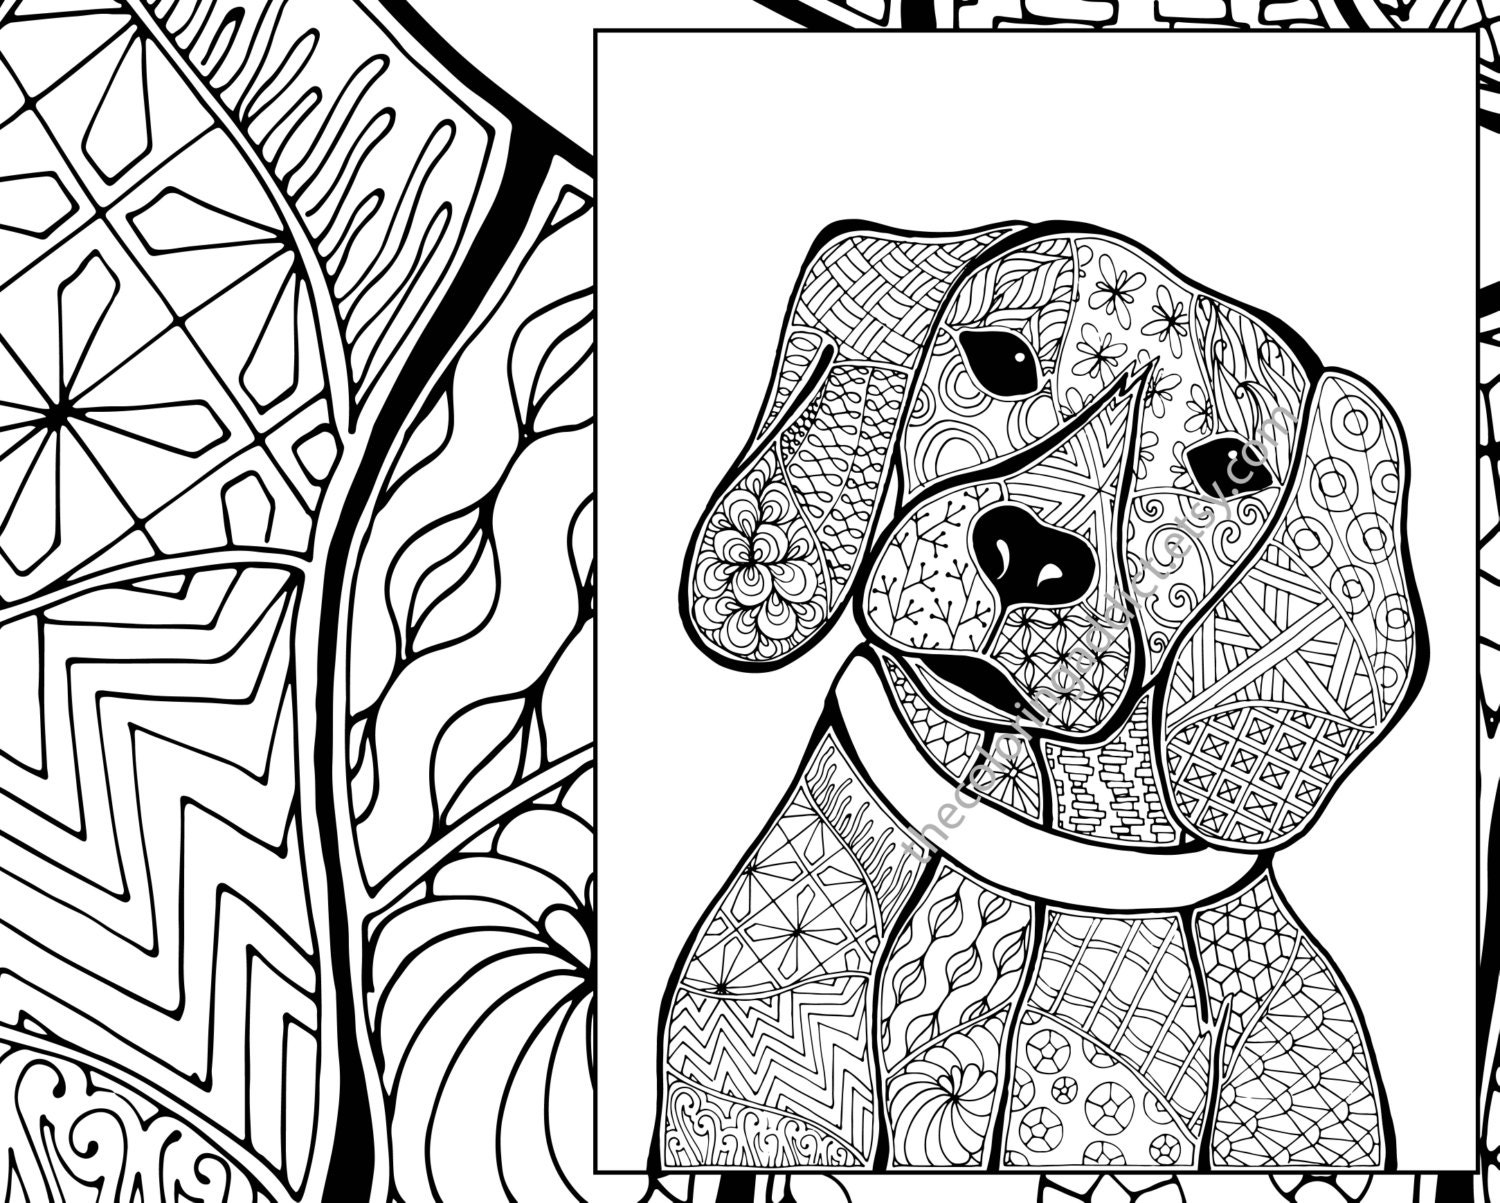 coloring in pages of dogs | zentangle dog colouring page animal colouring zentangle | Etsy